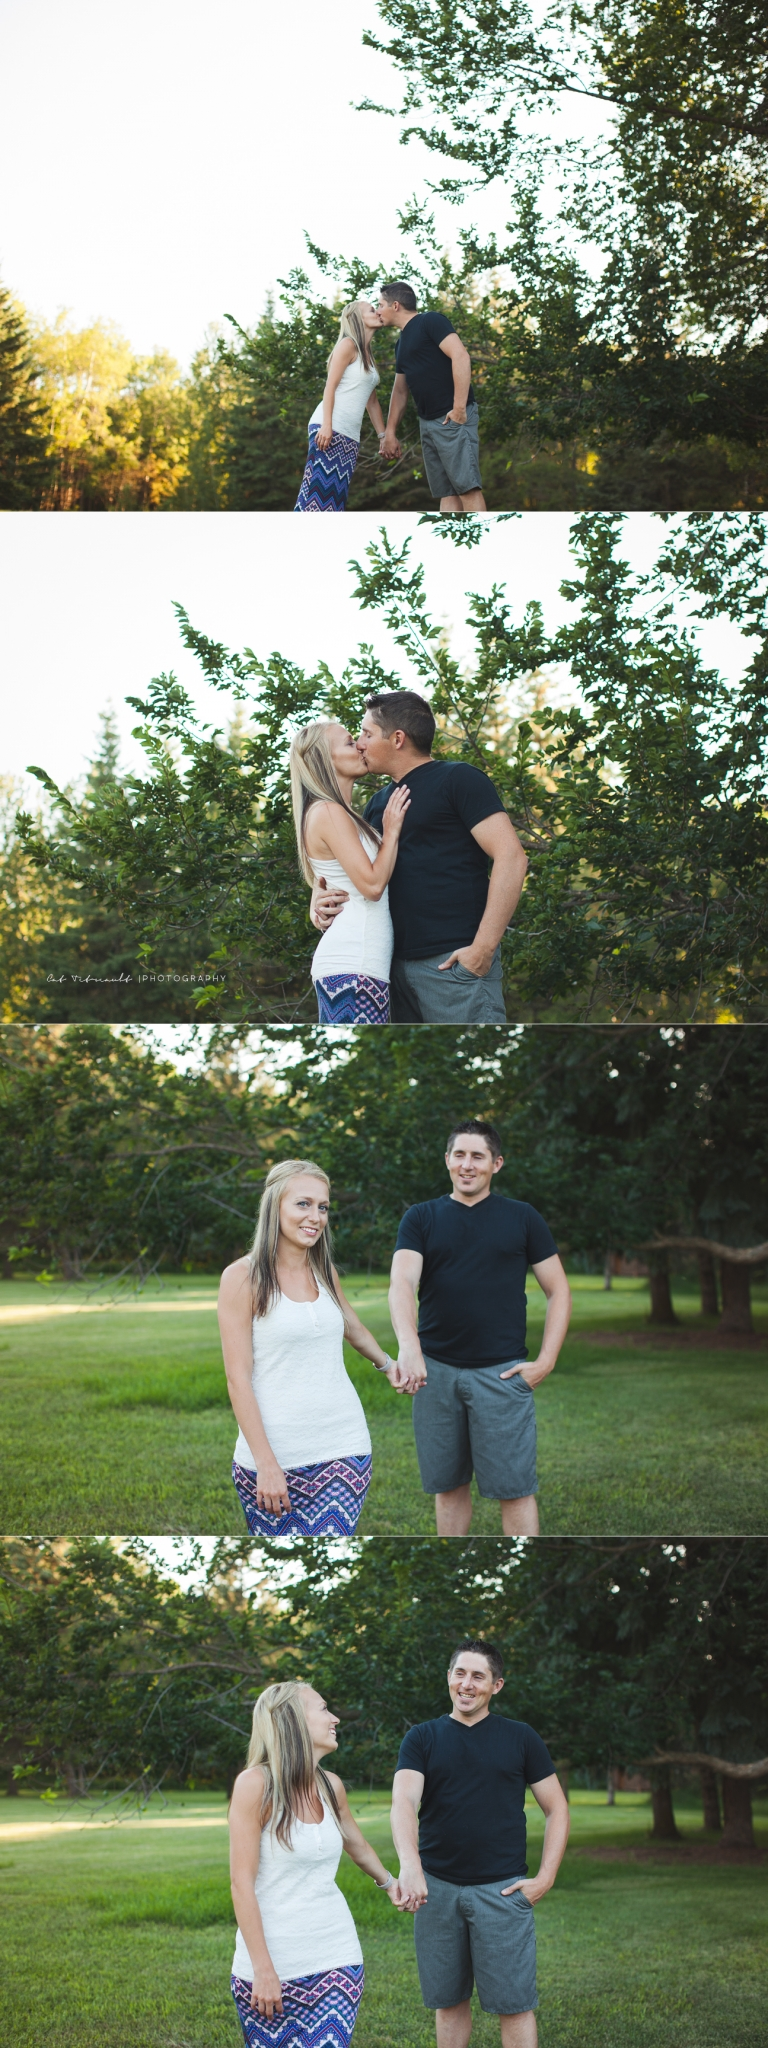 engagementphotos7